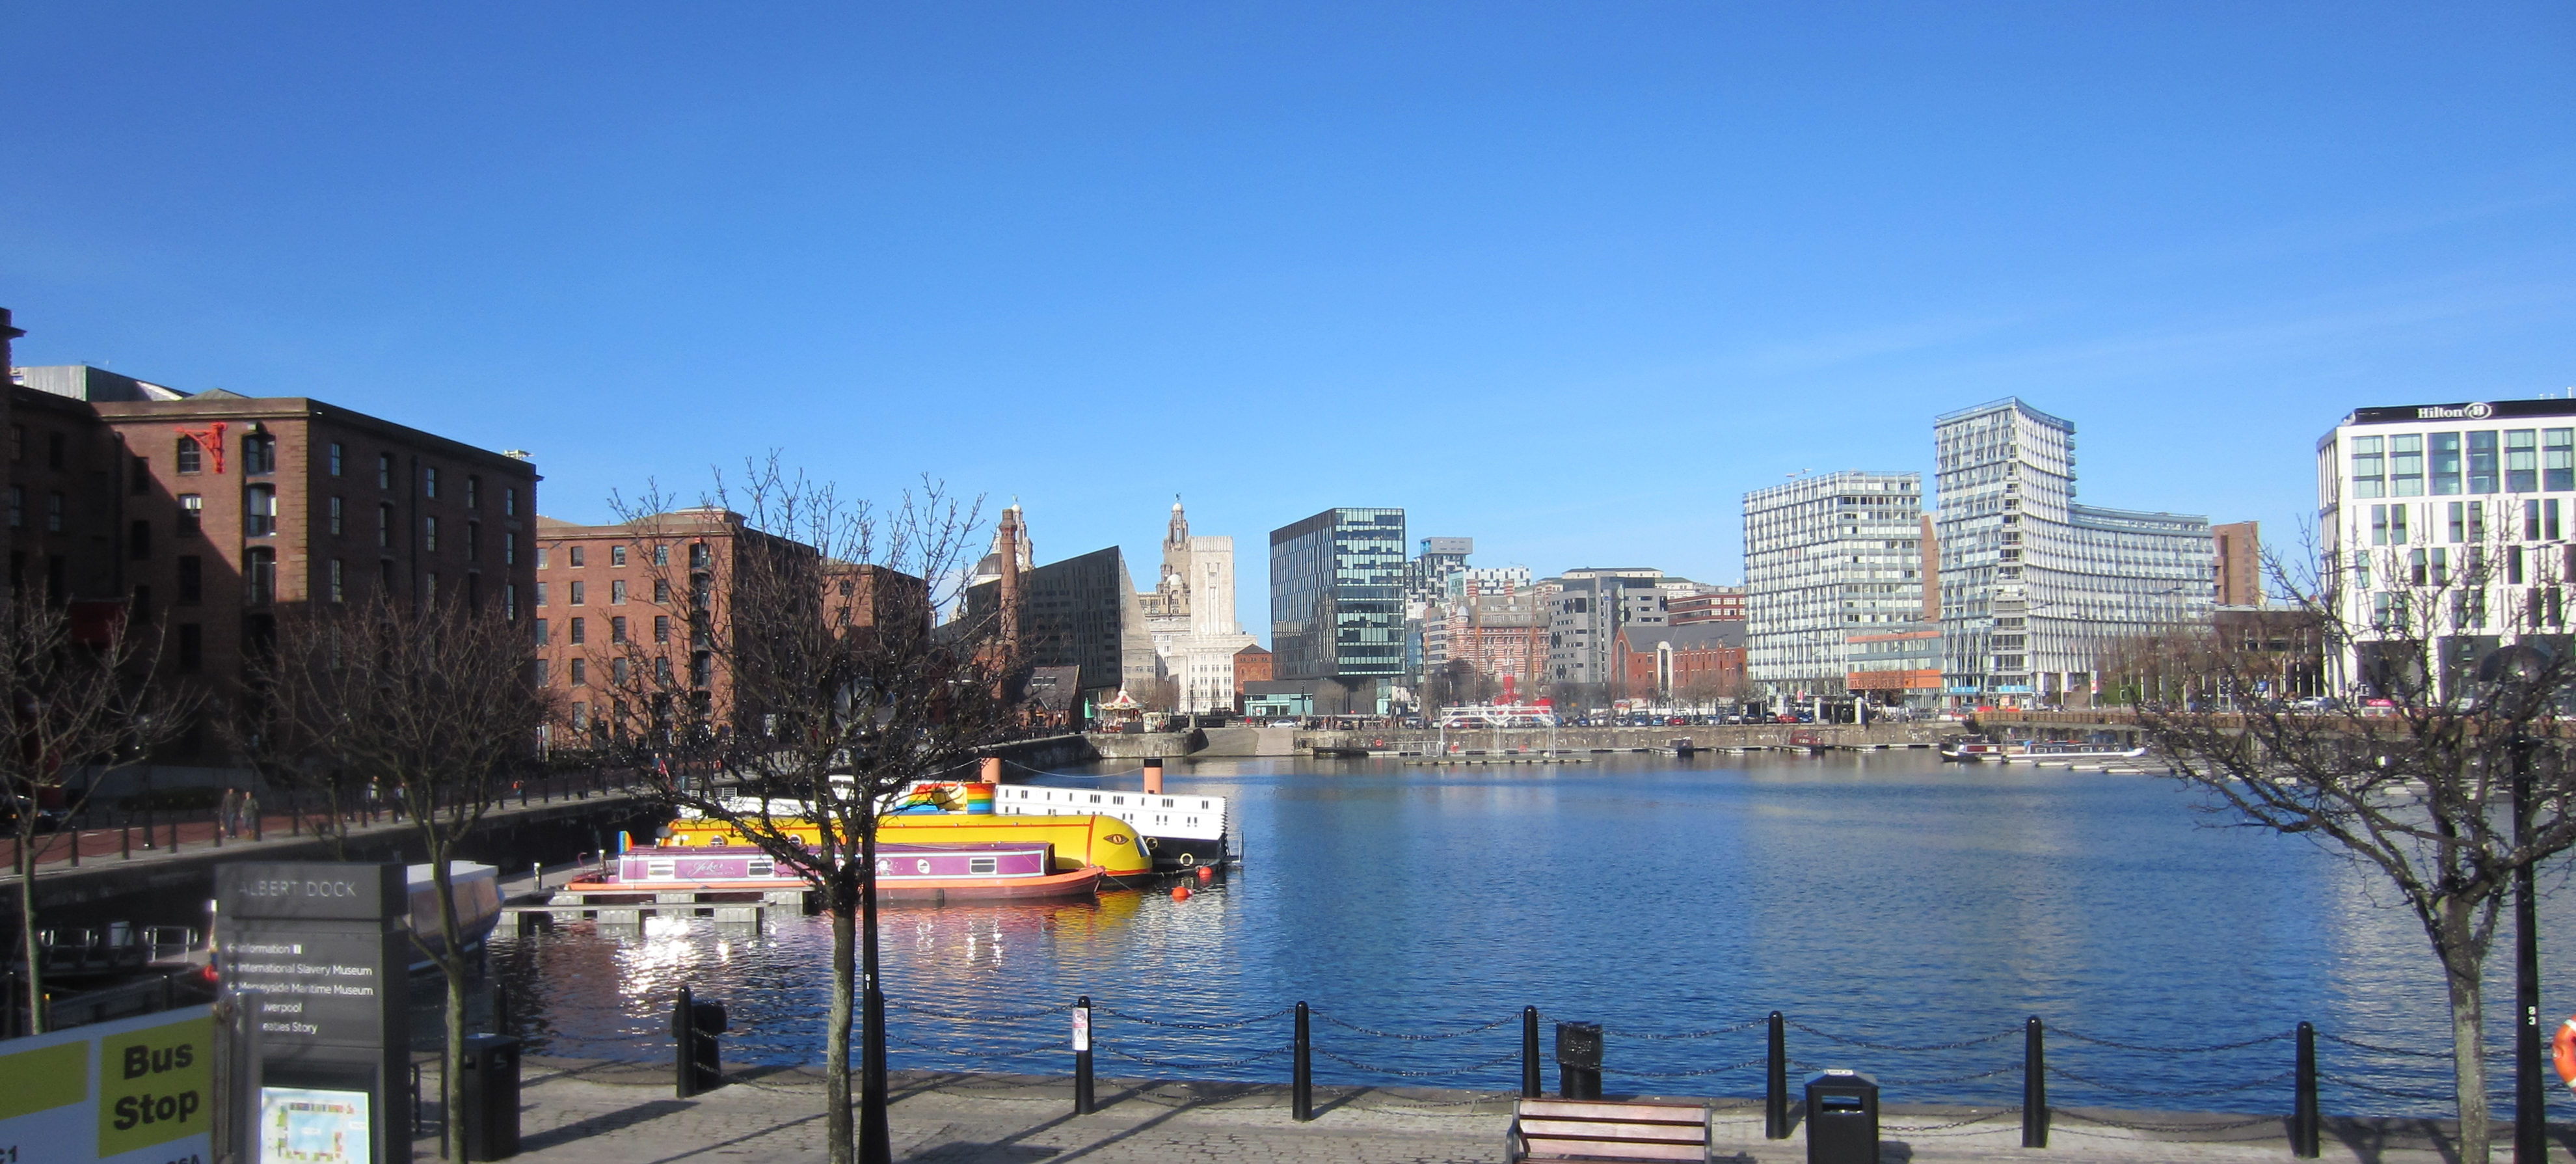 waterfront and buildings